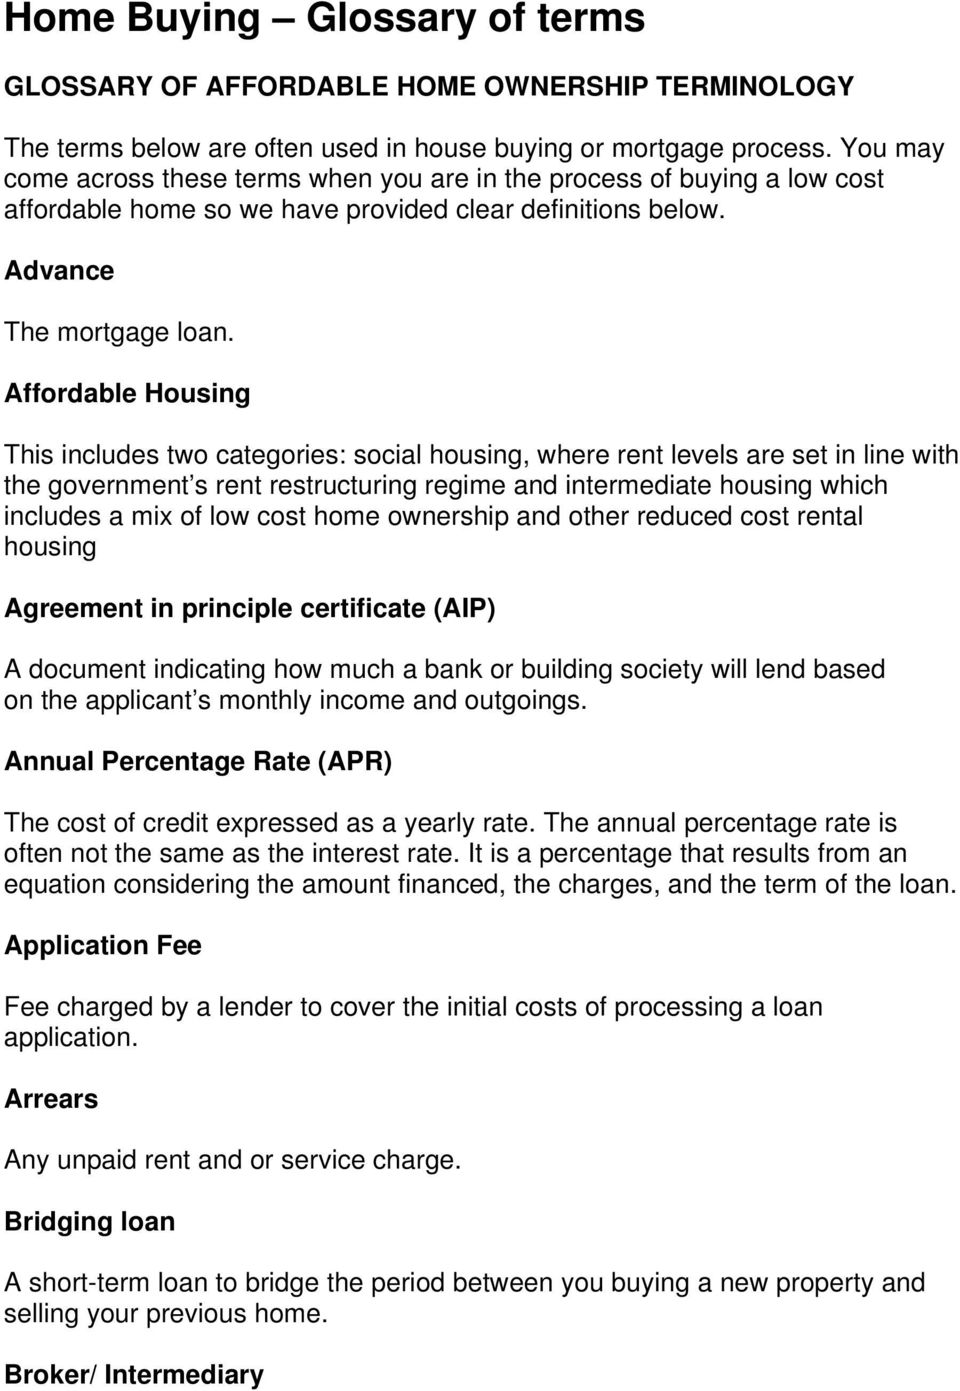 Affordable Housing This includes two categories: social housing, where rent levels are set in line with the government s rent restructuring regime and intermediate housing which includes a mix of low